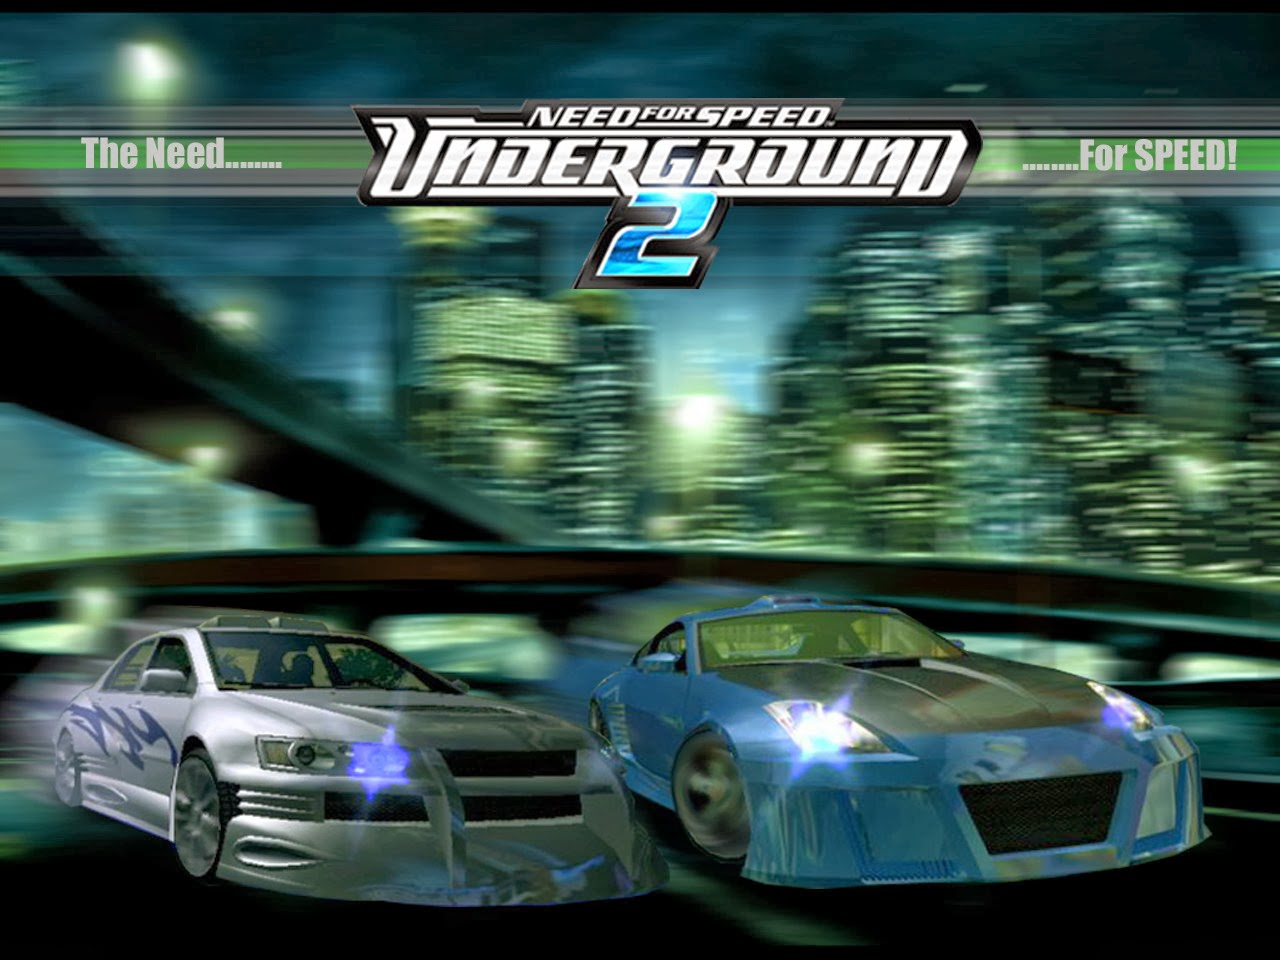 Pictures of Nfs Underground 4 - #rock-cafe